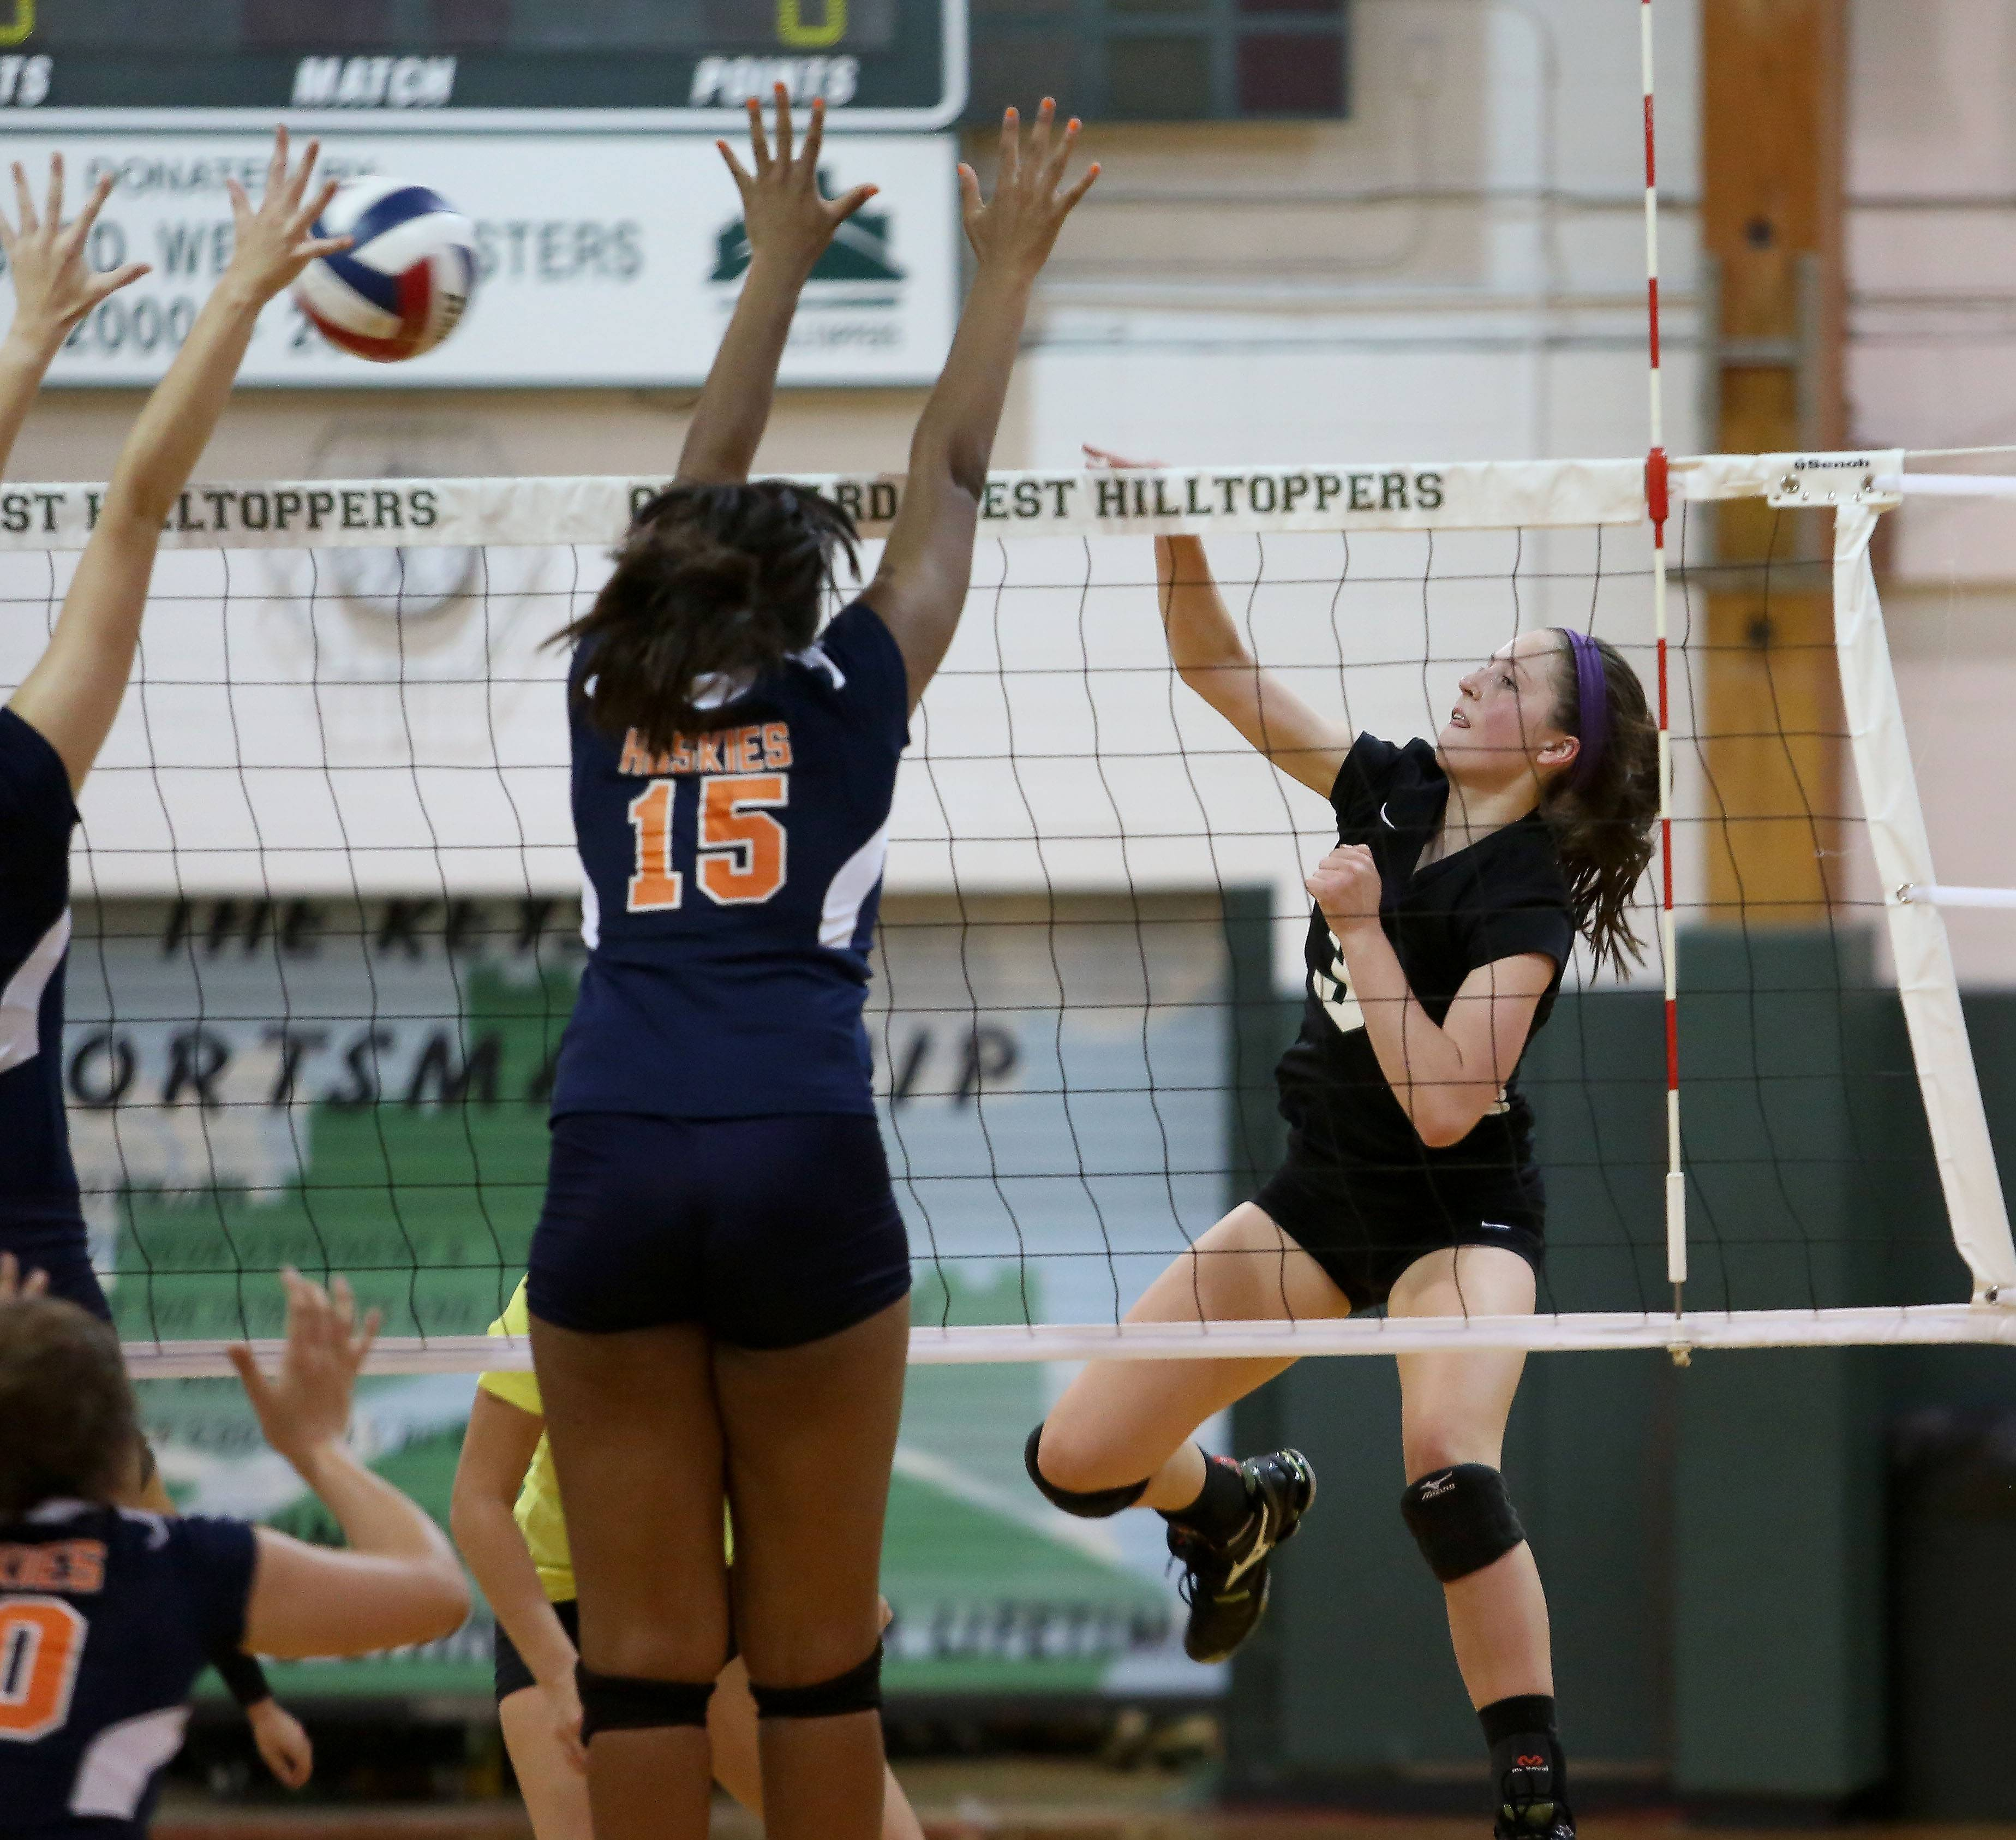 Alison Burelbach of Glenbard West spikes the ball against Oak Park River Forest during girls volleyball on Tuesday in Glen Ellyn.